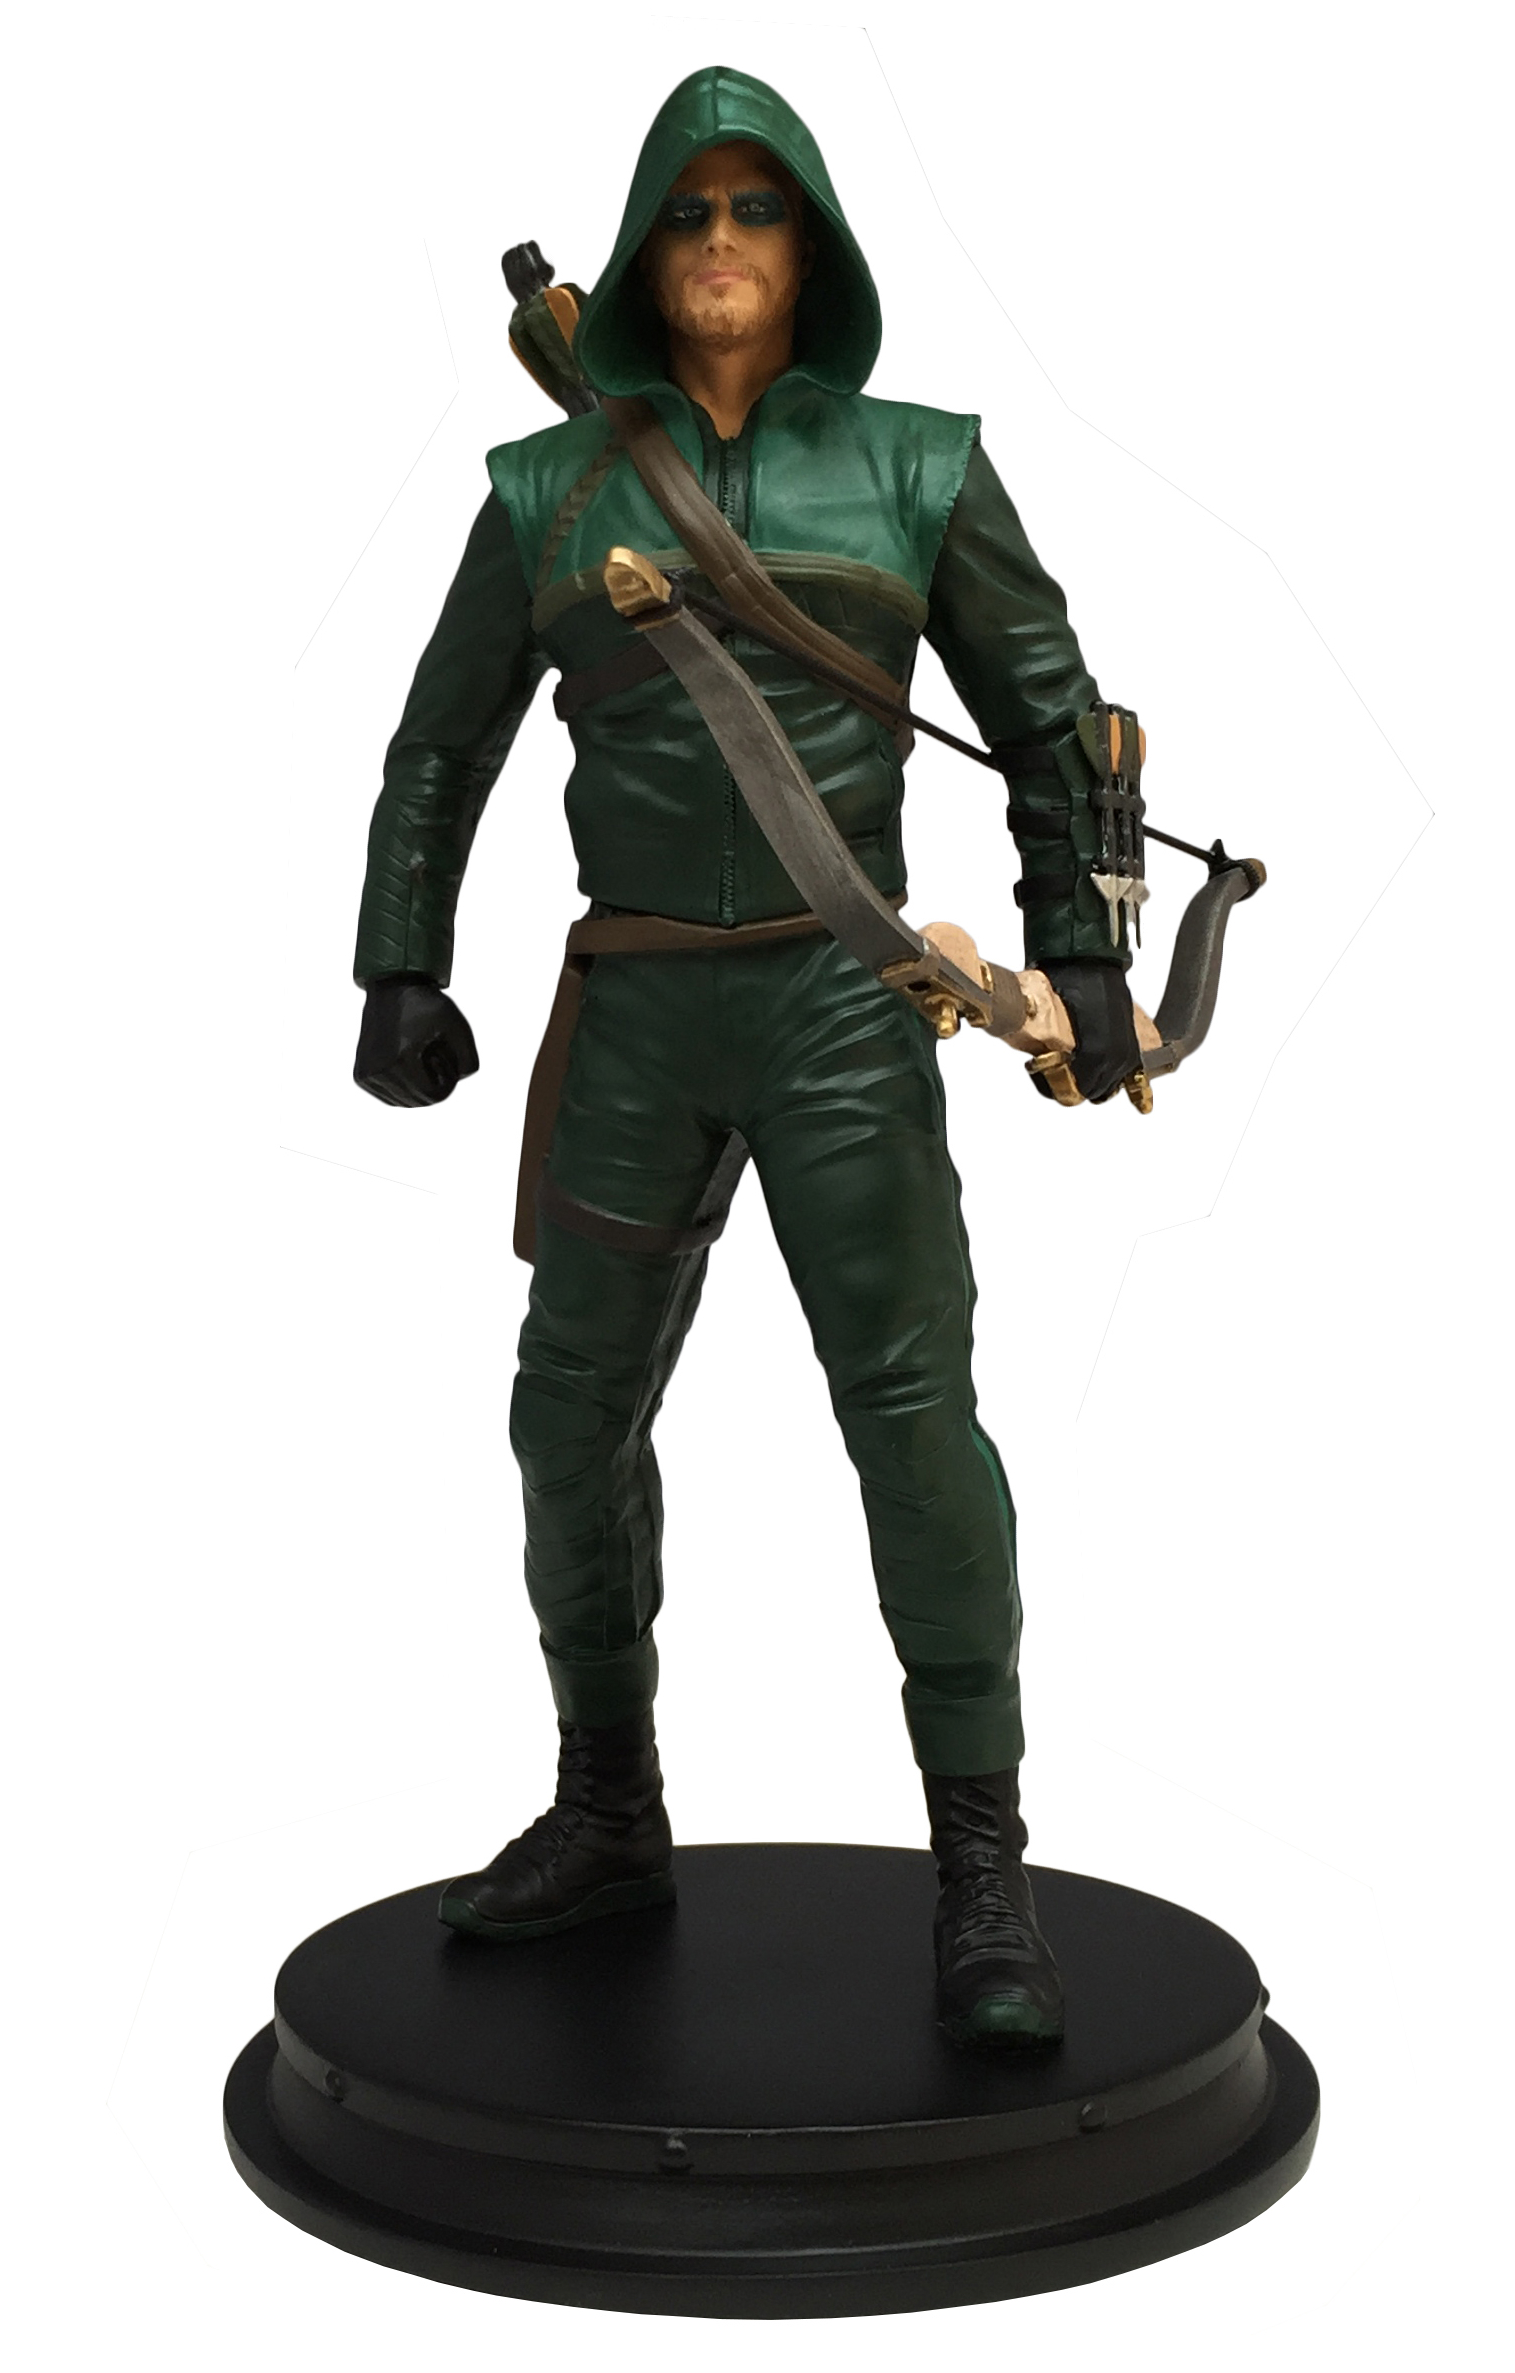 ARROW TV SEASON 1 PX STATUE